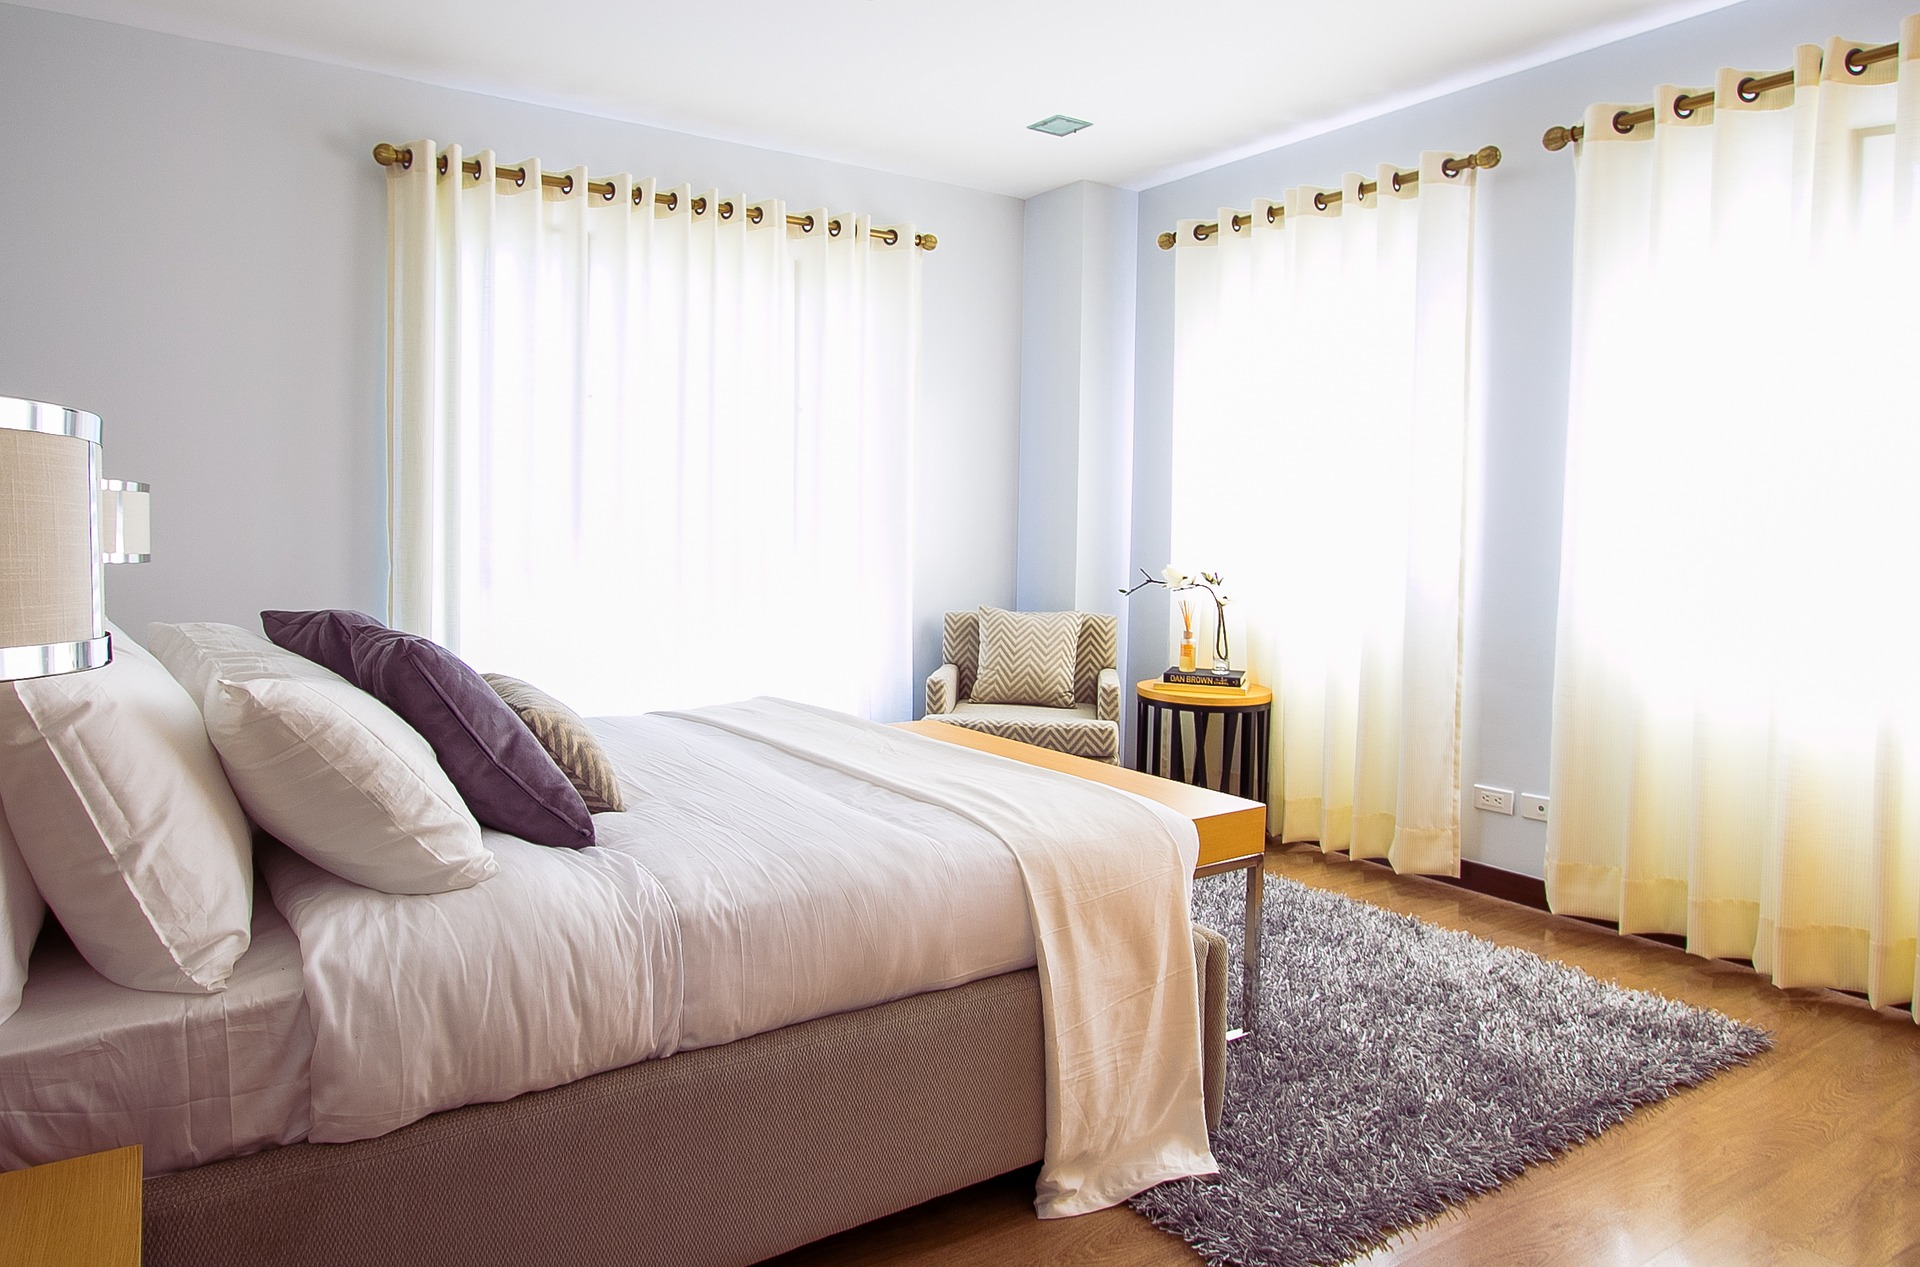 5 Tips for a Cozy Home